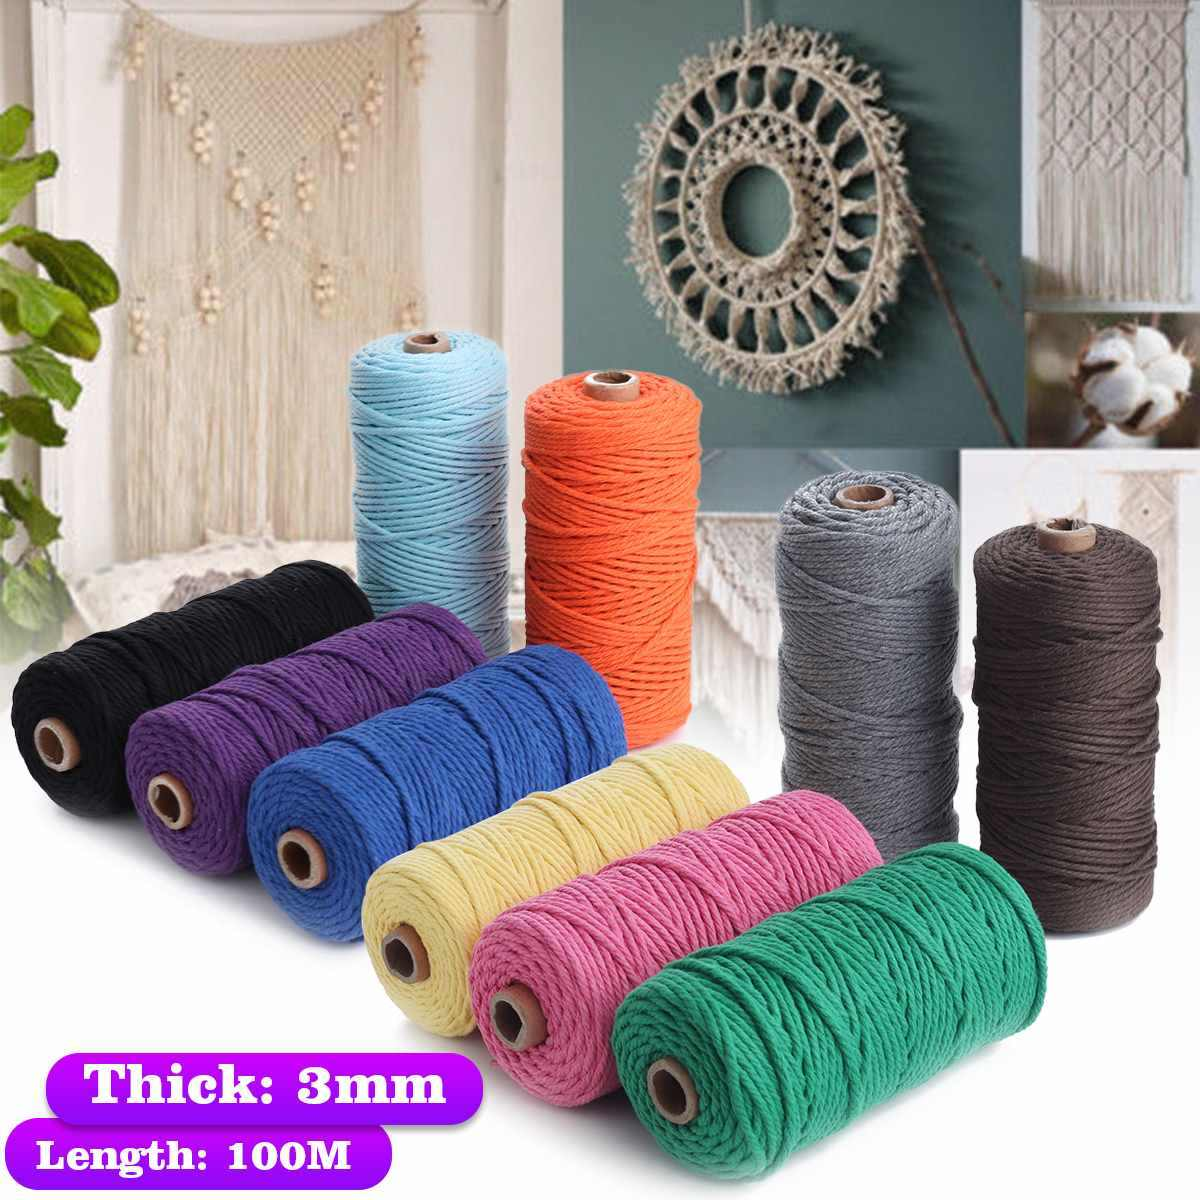 Crafts Macrame Cord Cotton Rope Twisted Braided String 3mm*100m Thread